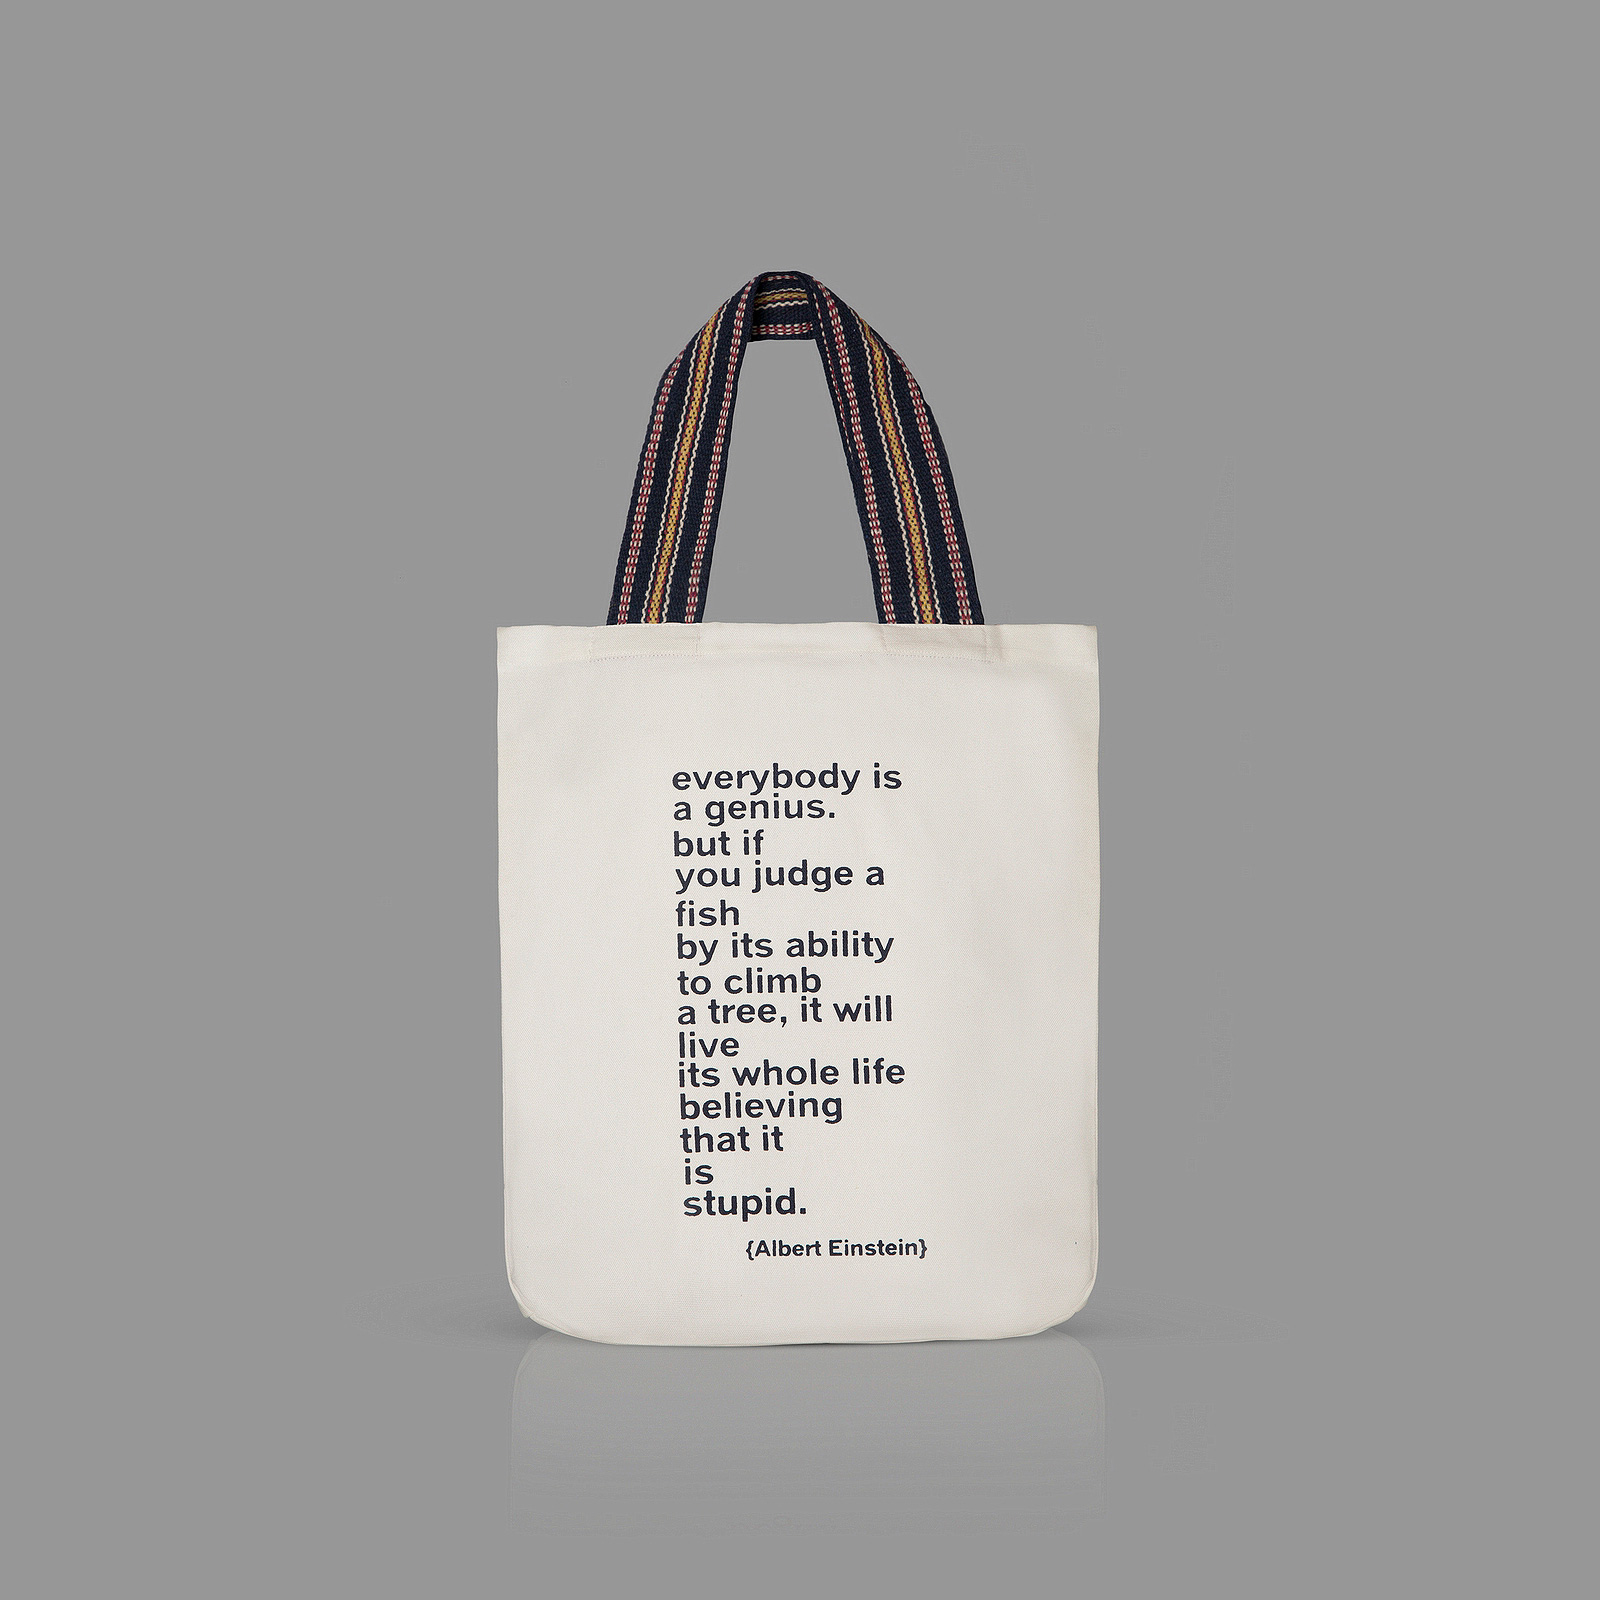 Quotation Totes-plain background-tall